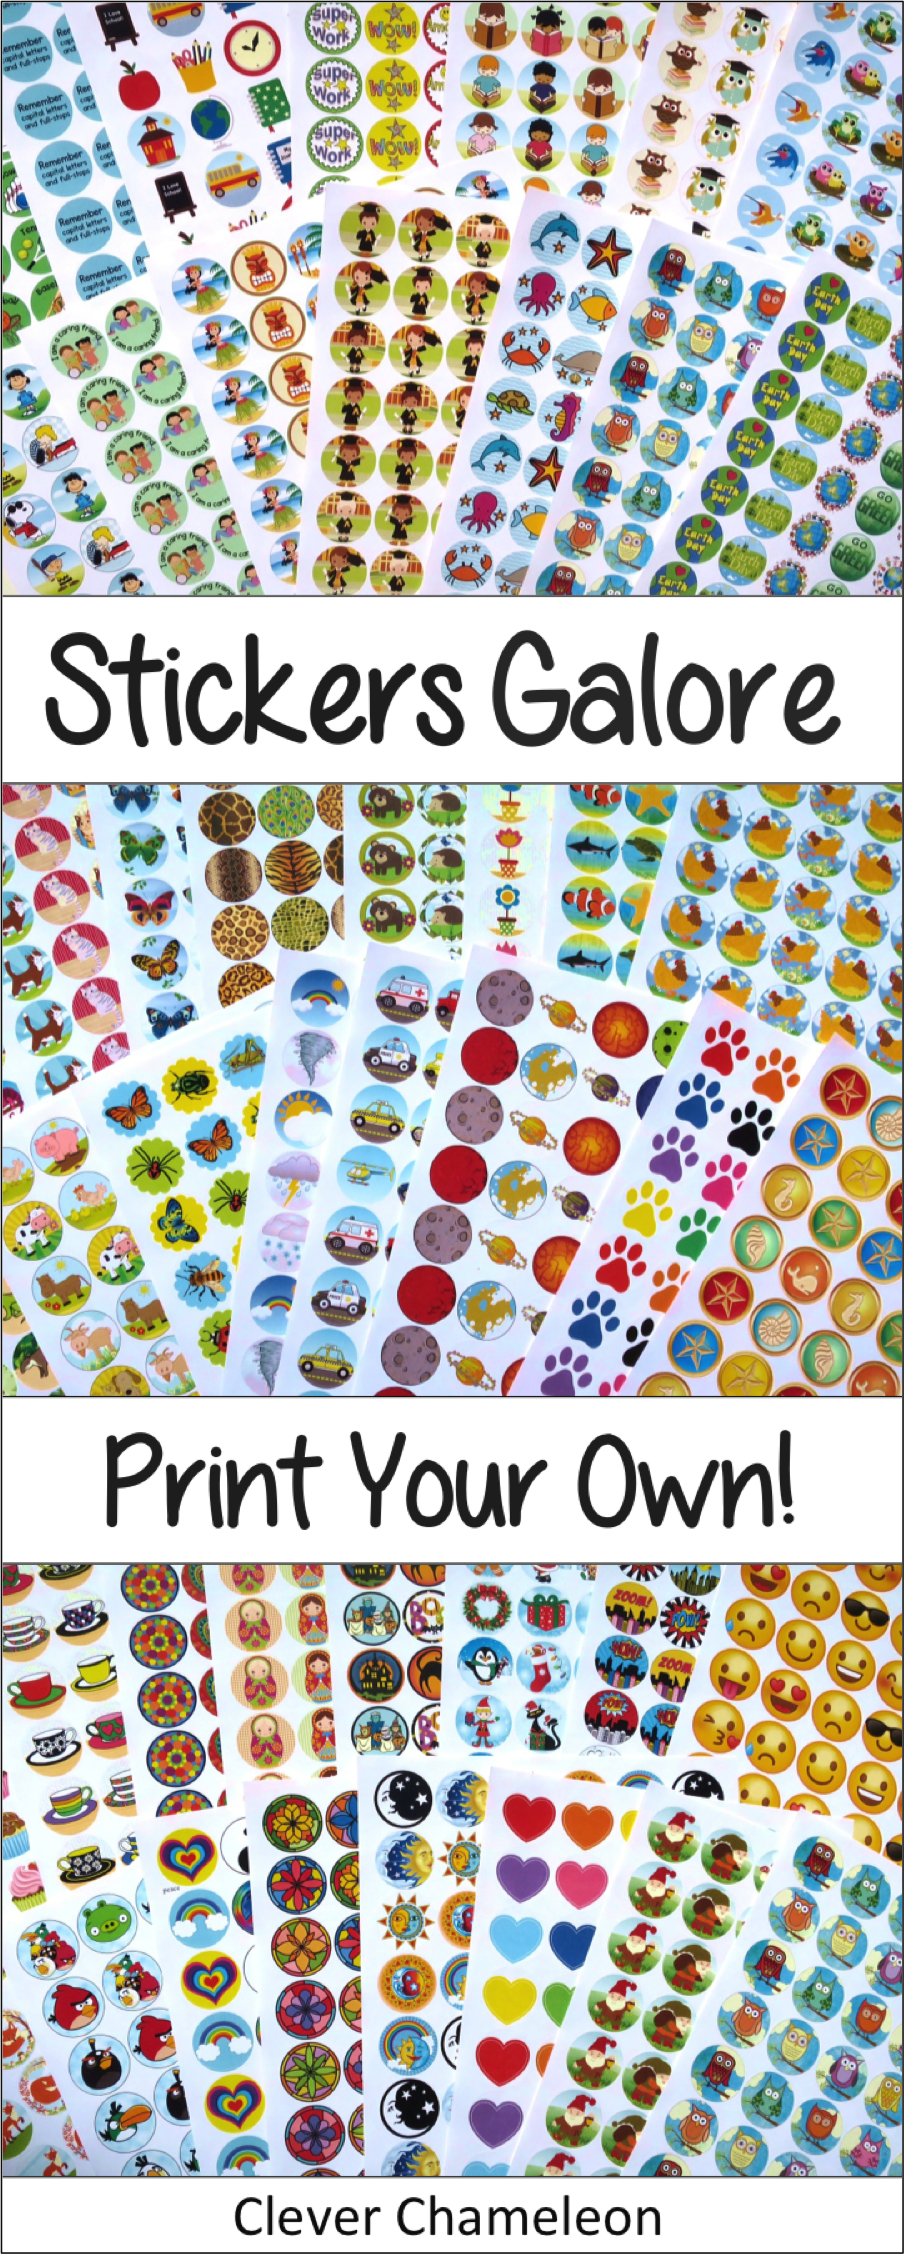 Stickers 60 printable sticker templates pinterest online print your own 60 printable sticker templates for online labels ol3012 maxwellsz